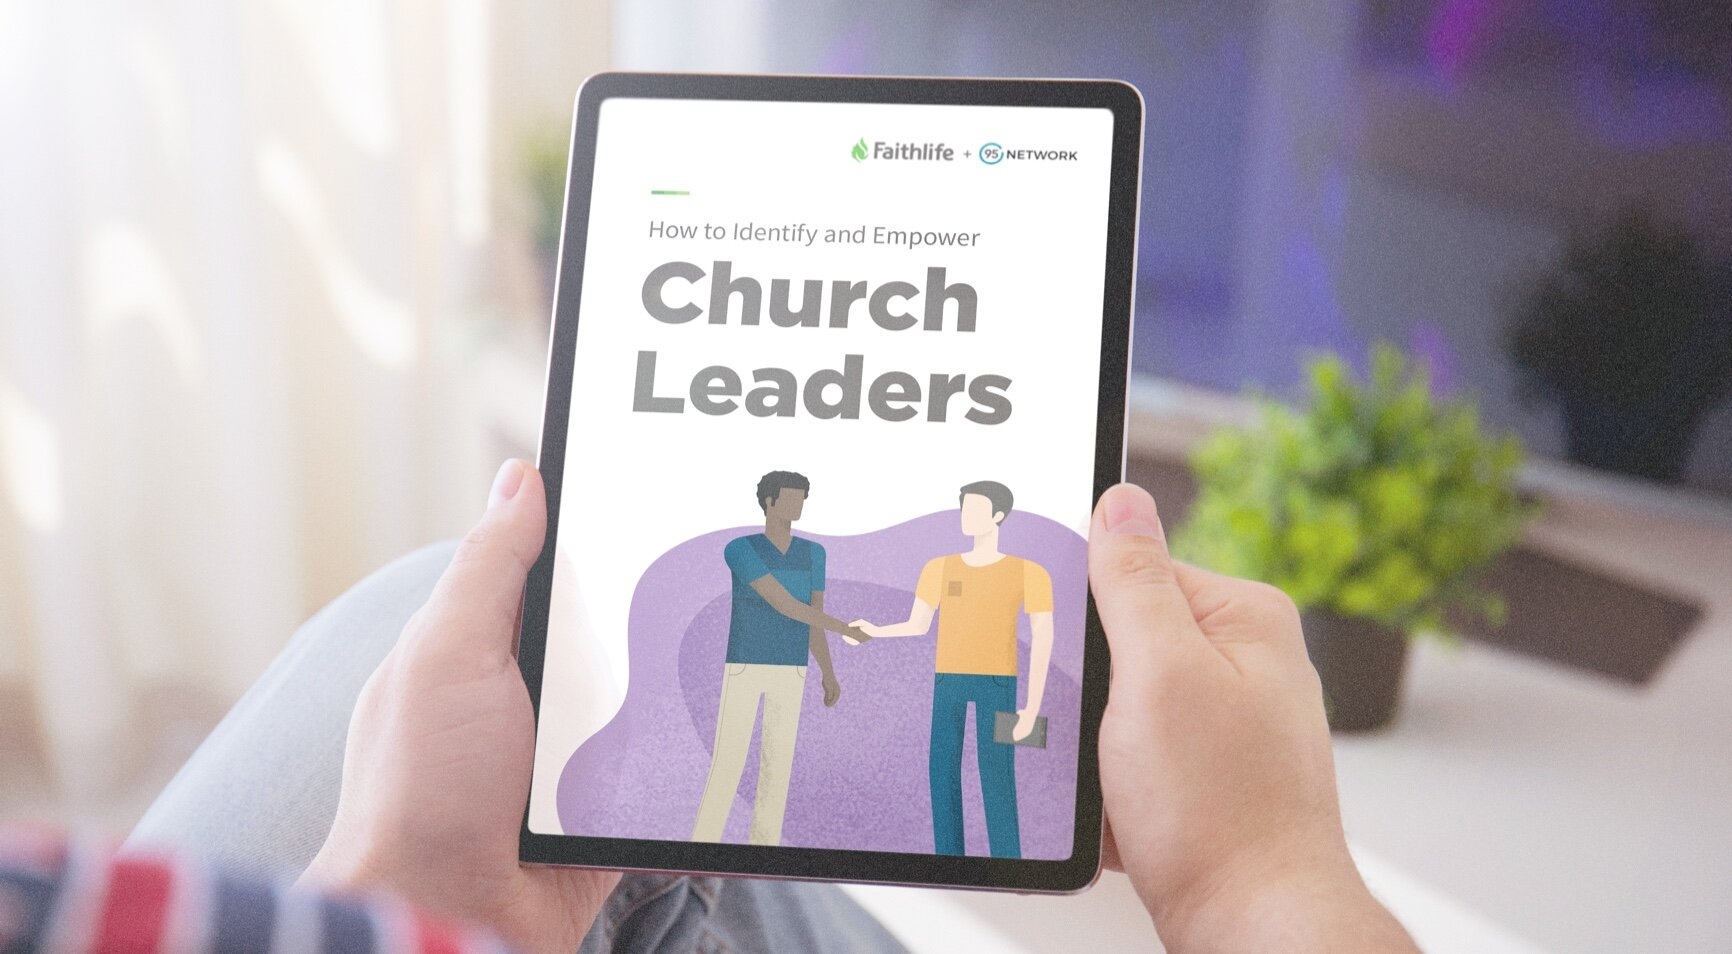 How to Identify and Empower Church Leaders